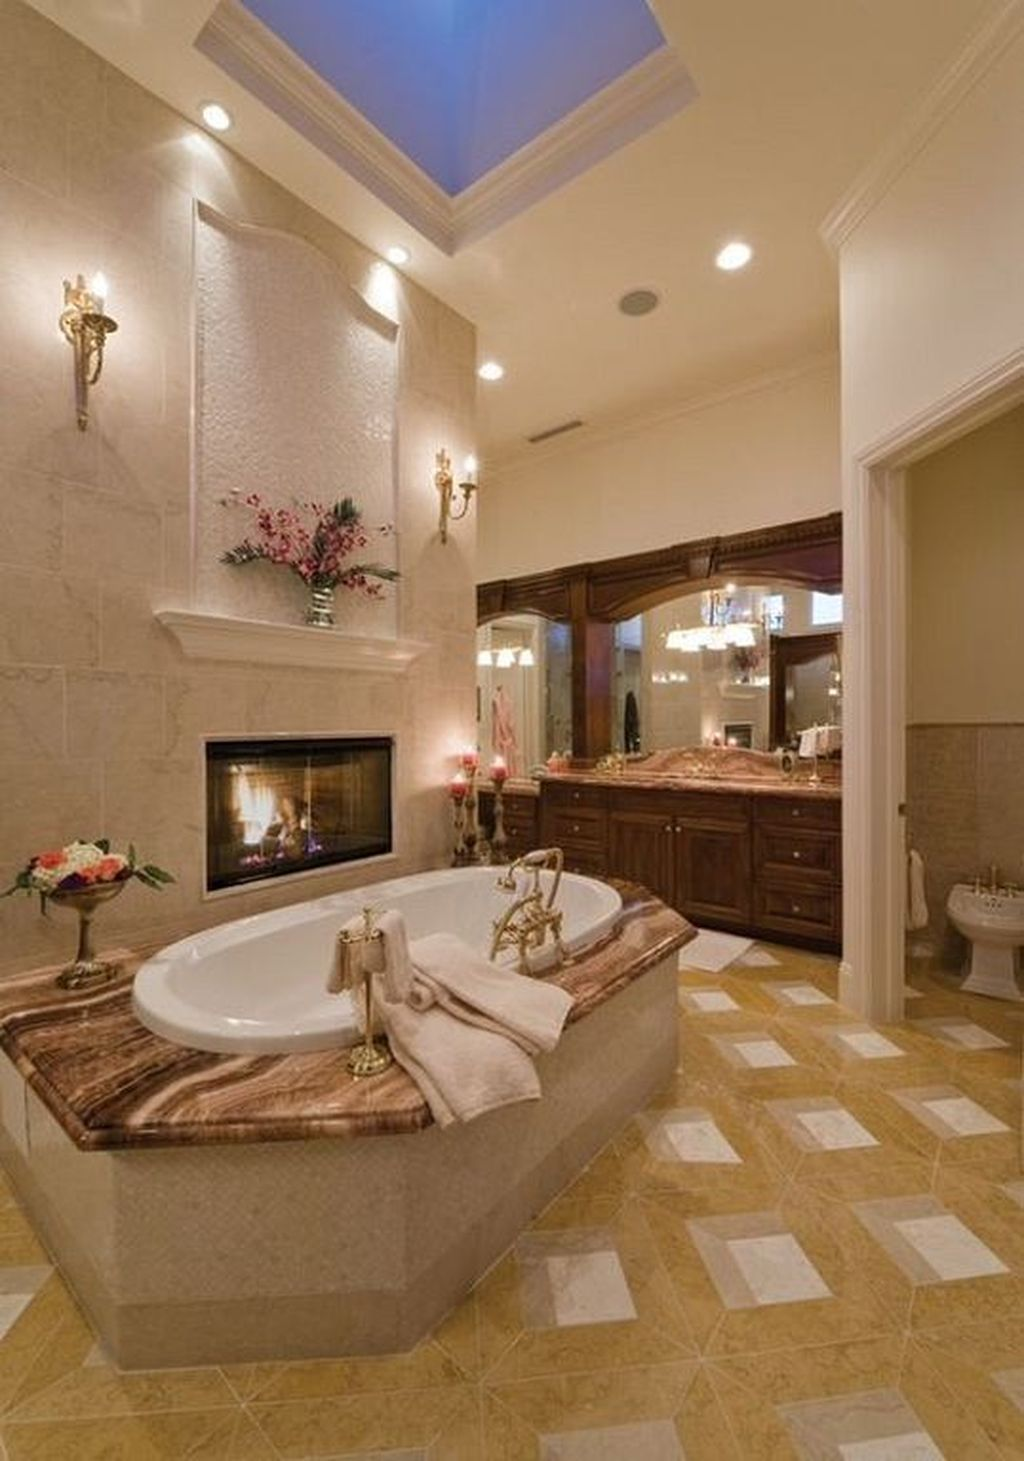 The Best Romantic Bathroom Ideas Perfect For Valentines Day 14